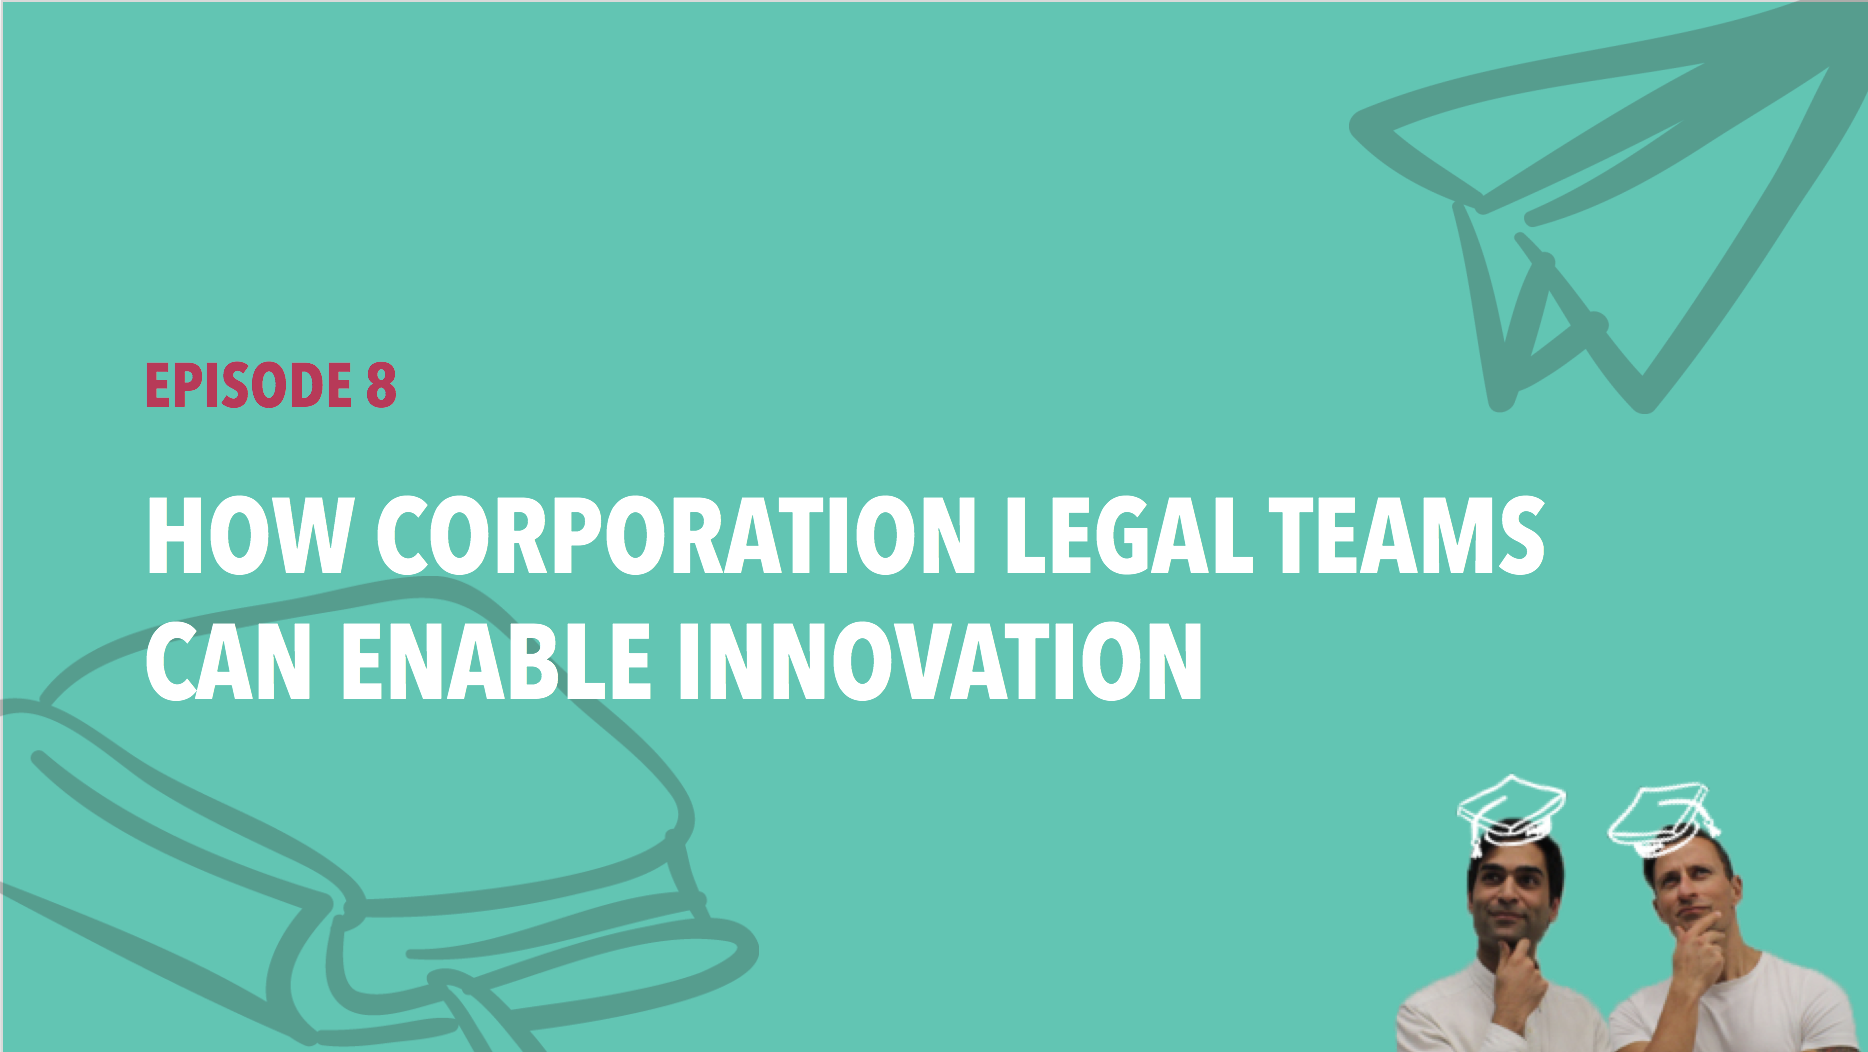 CiSchool Episode #008: How corporation legal teams can enable innovation